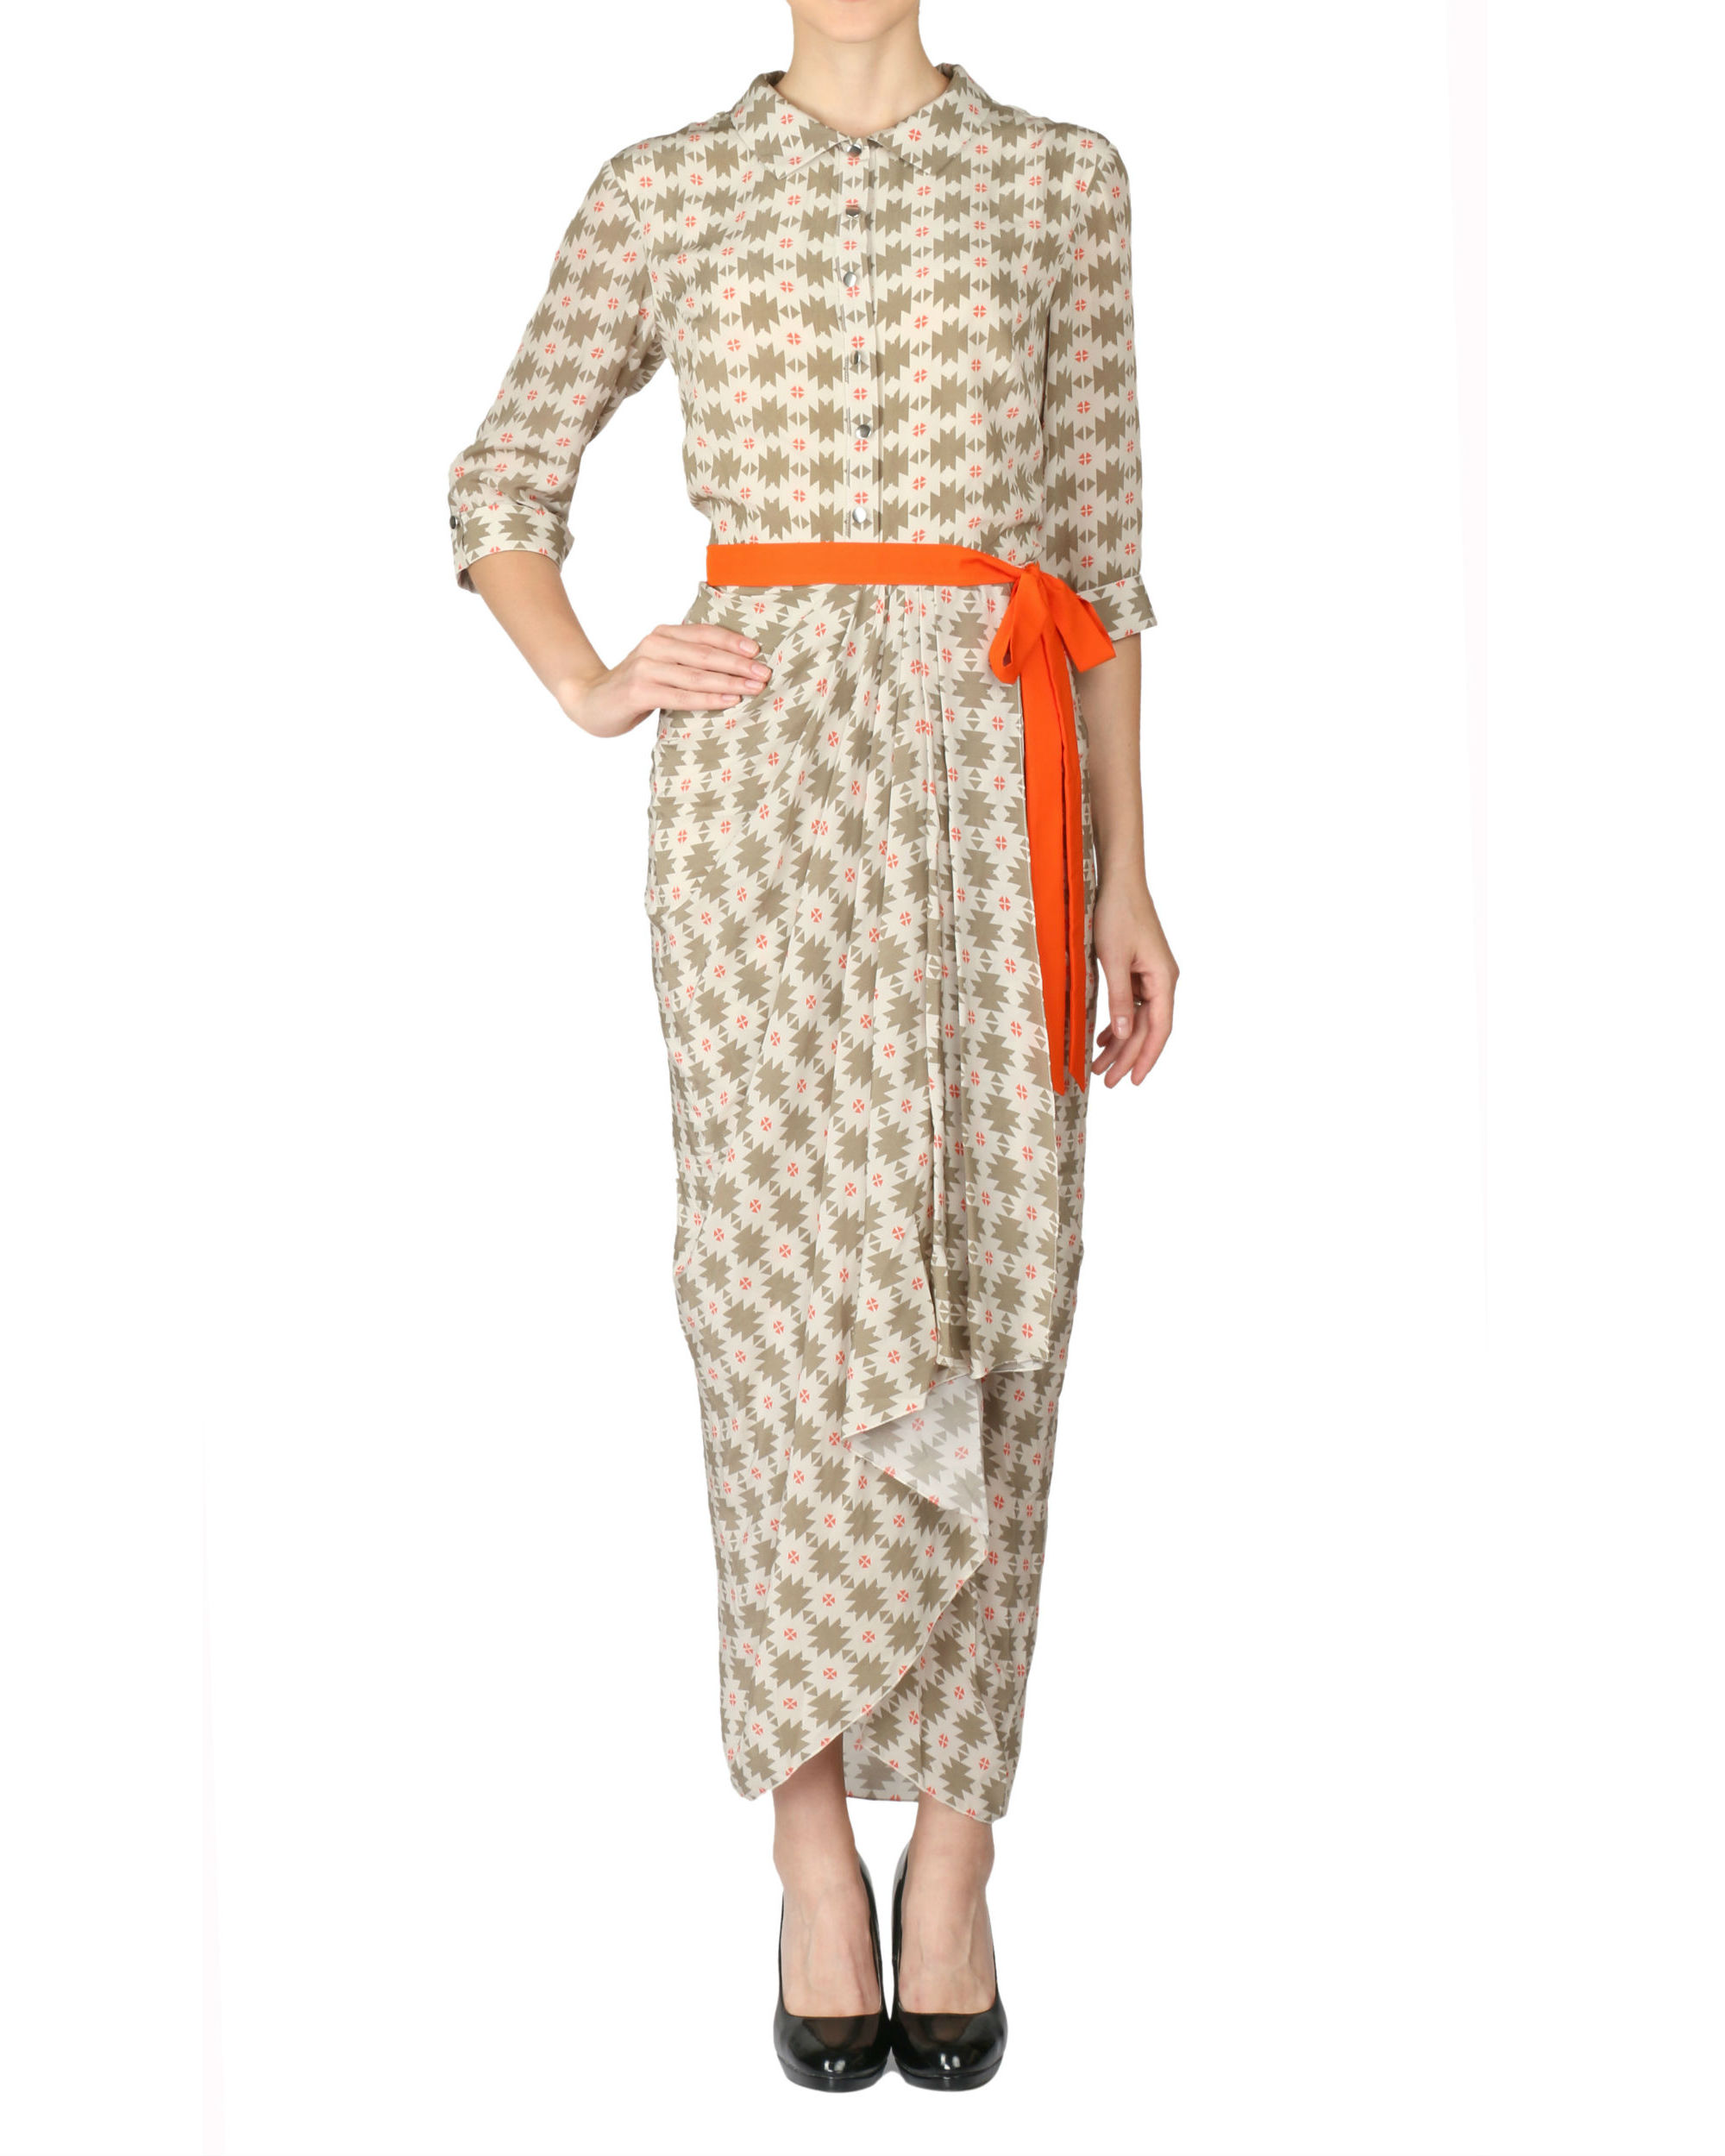 Printed dhoti dress